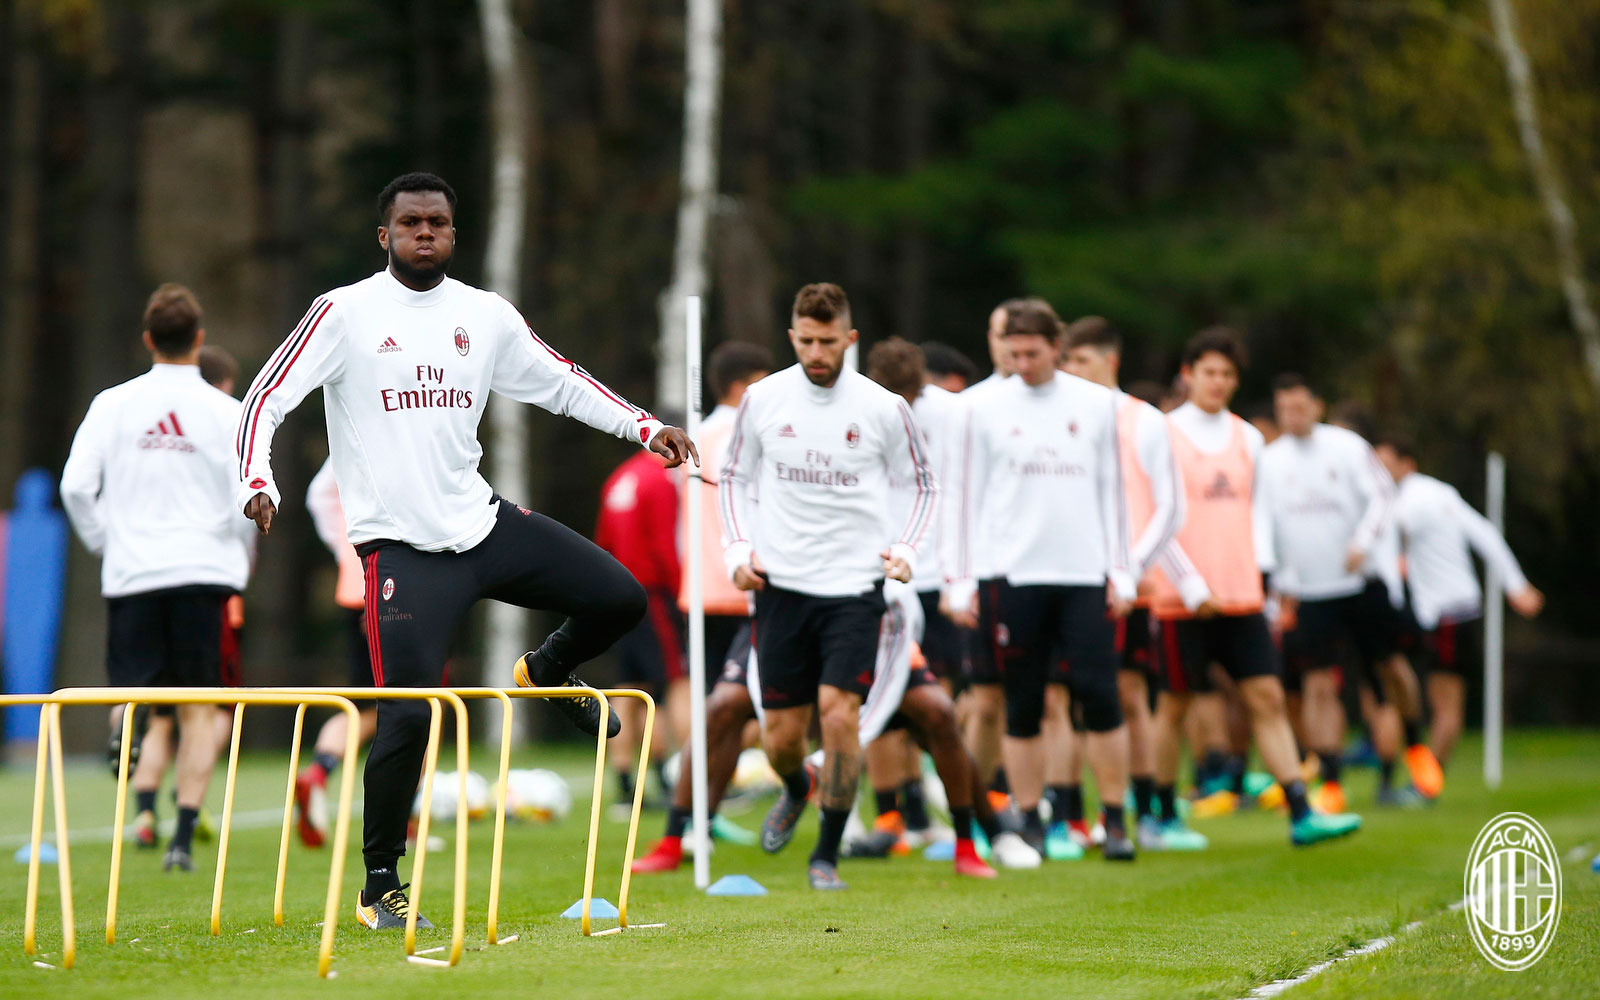 Franck Kessié during training at Milanello. (@acmilan.com)